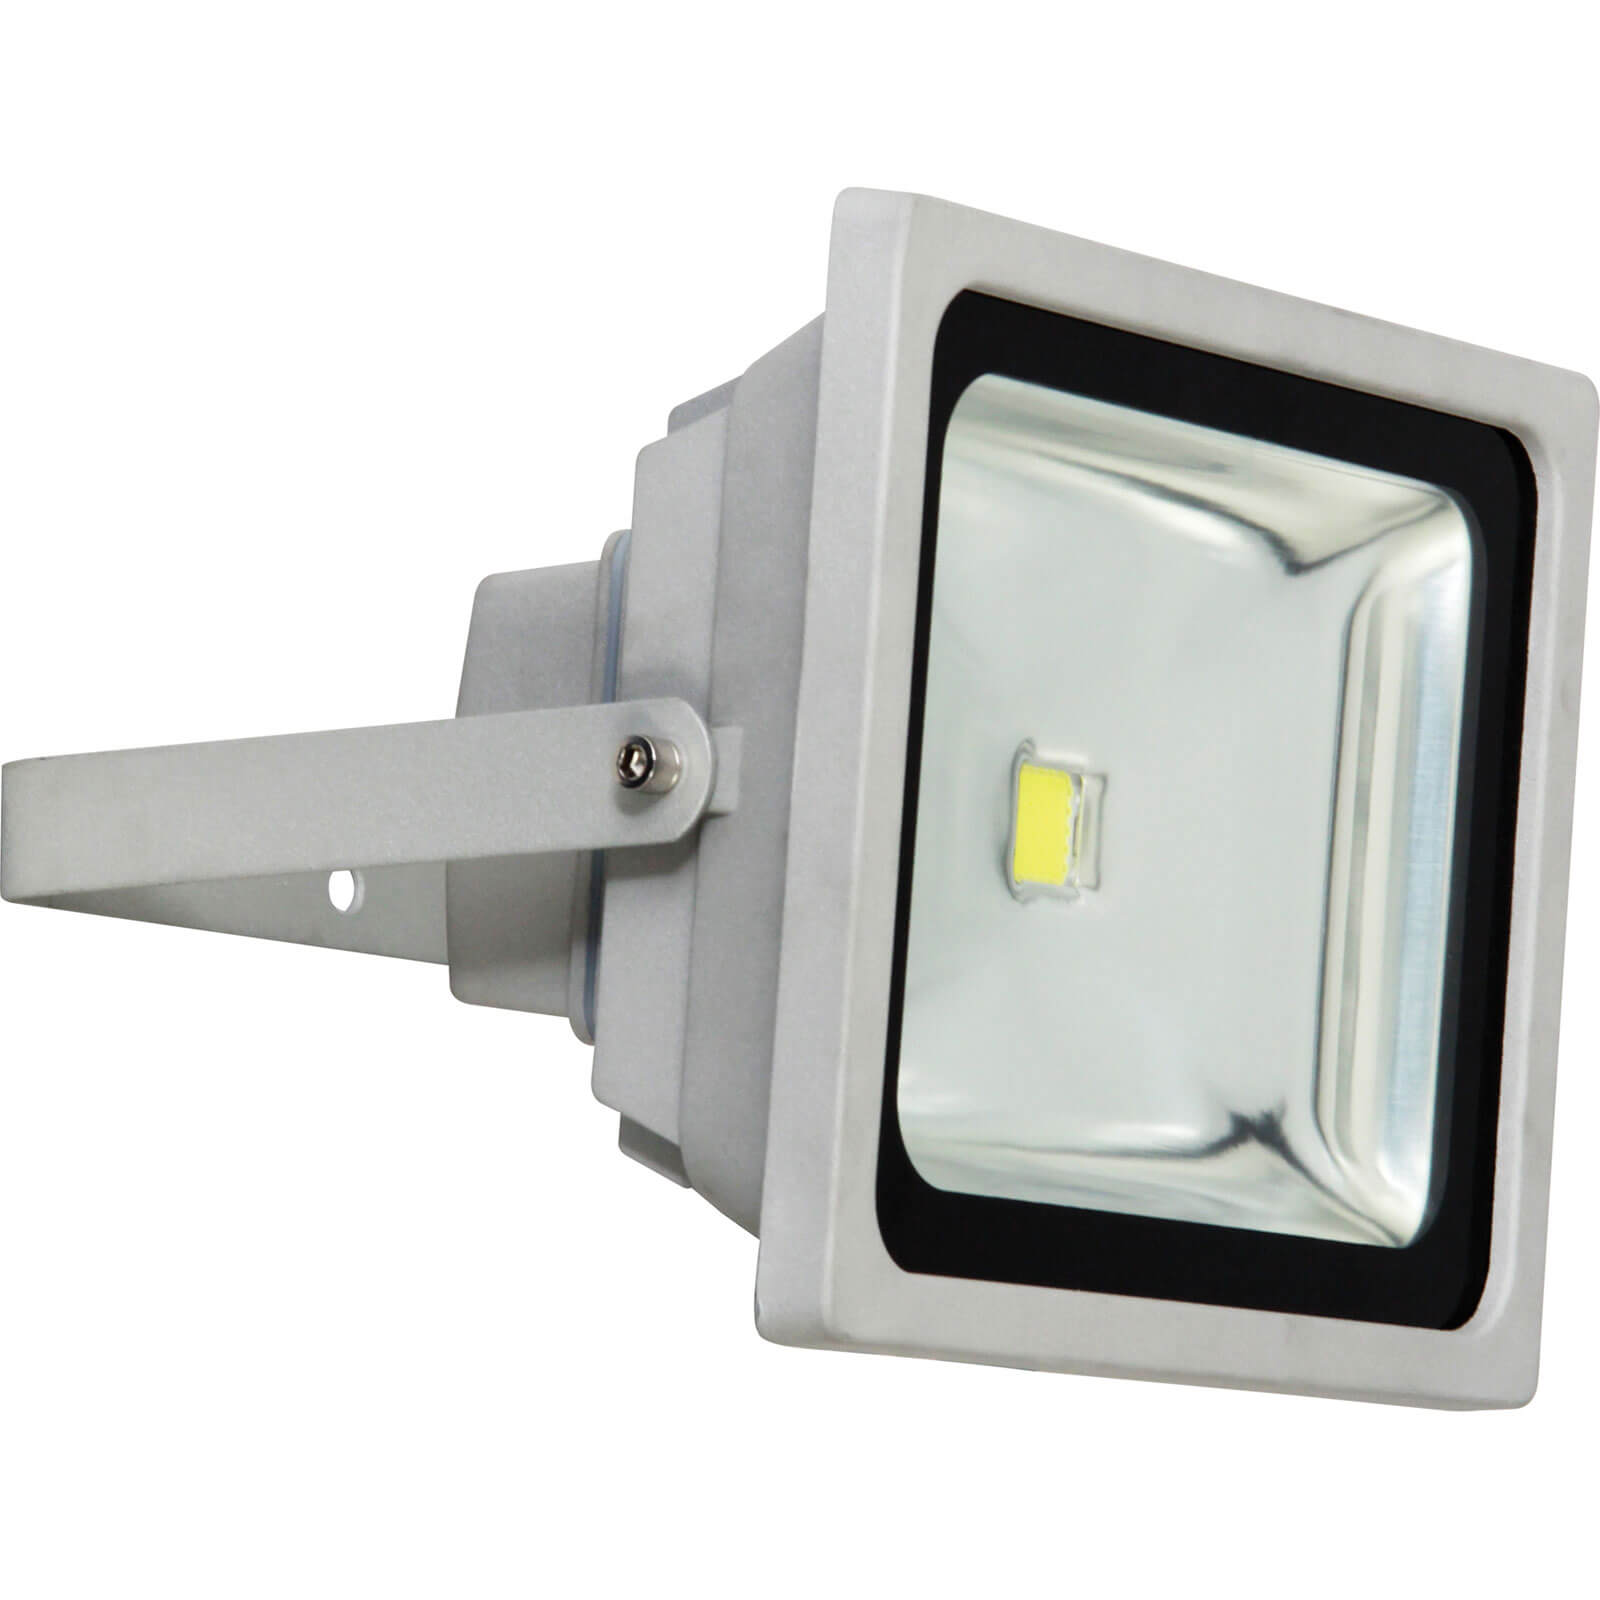 Byron XQ1225 SMD LED Floodlight 3000 Lumens 50w 240v